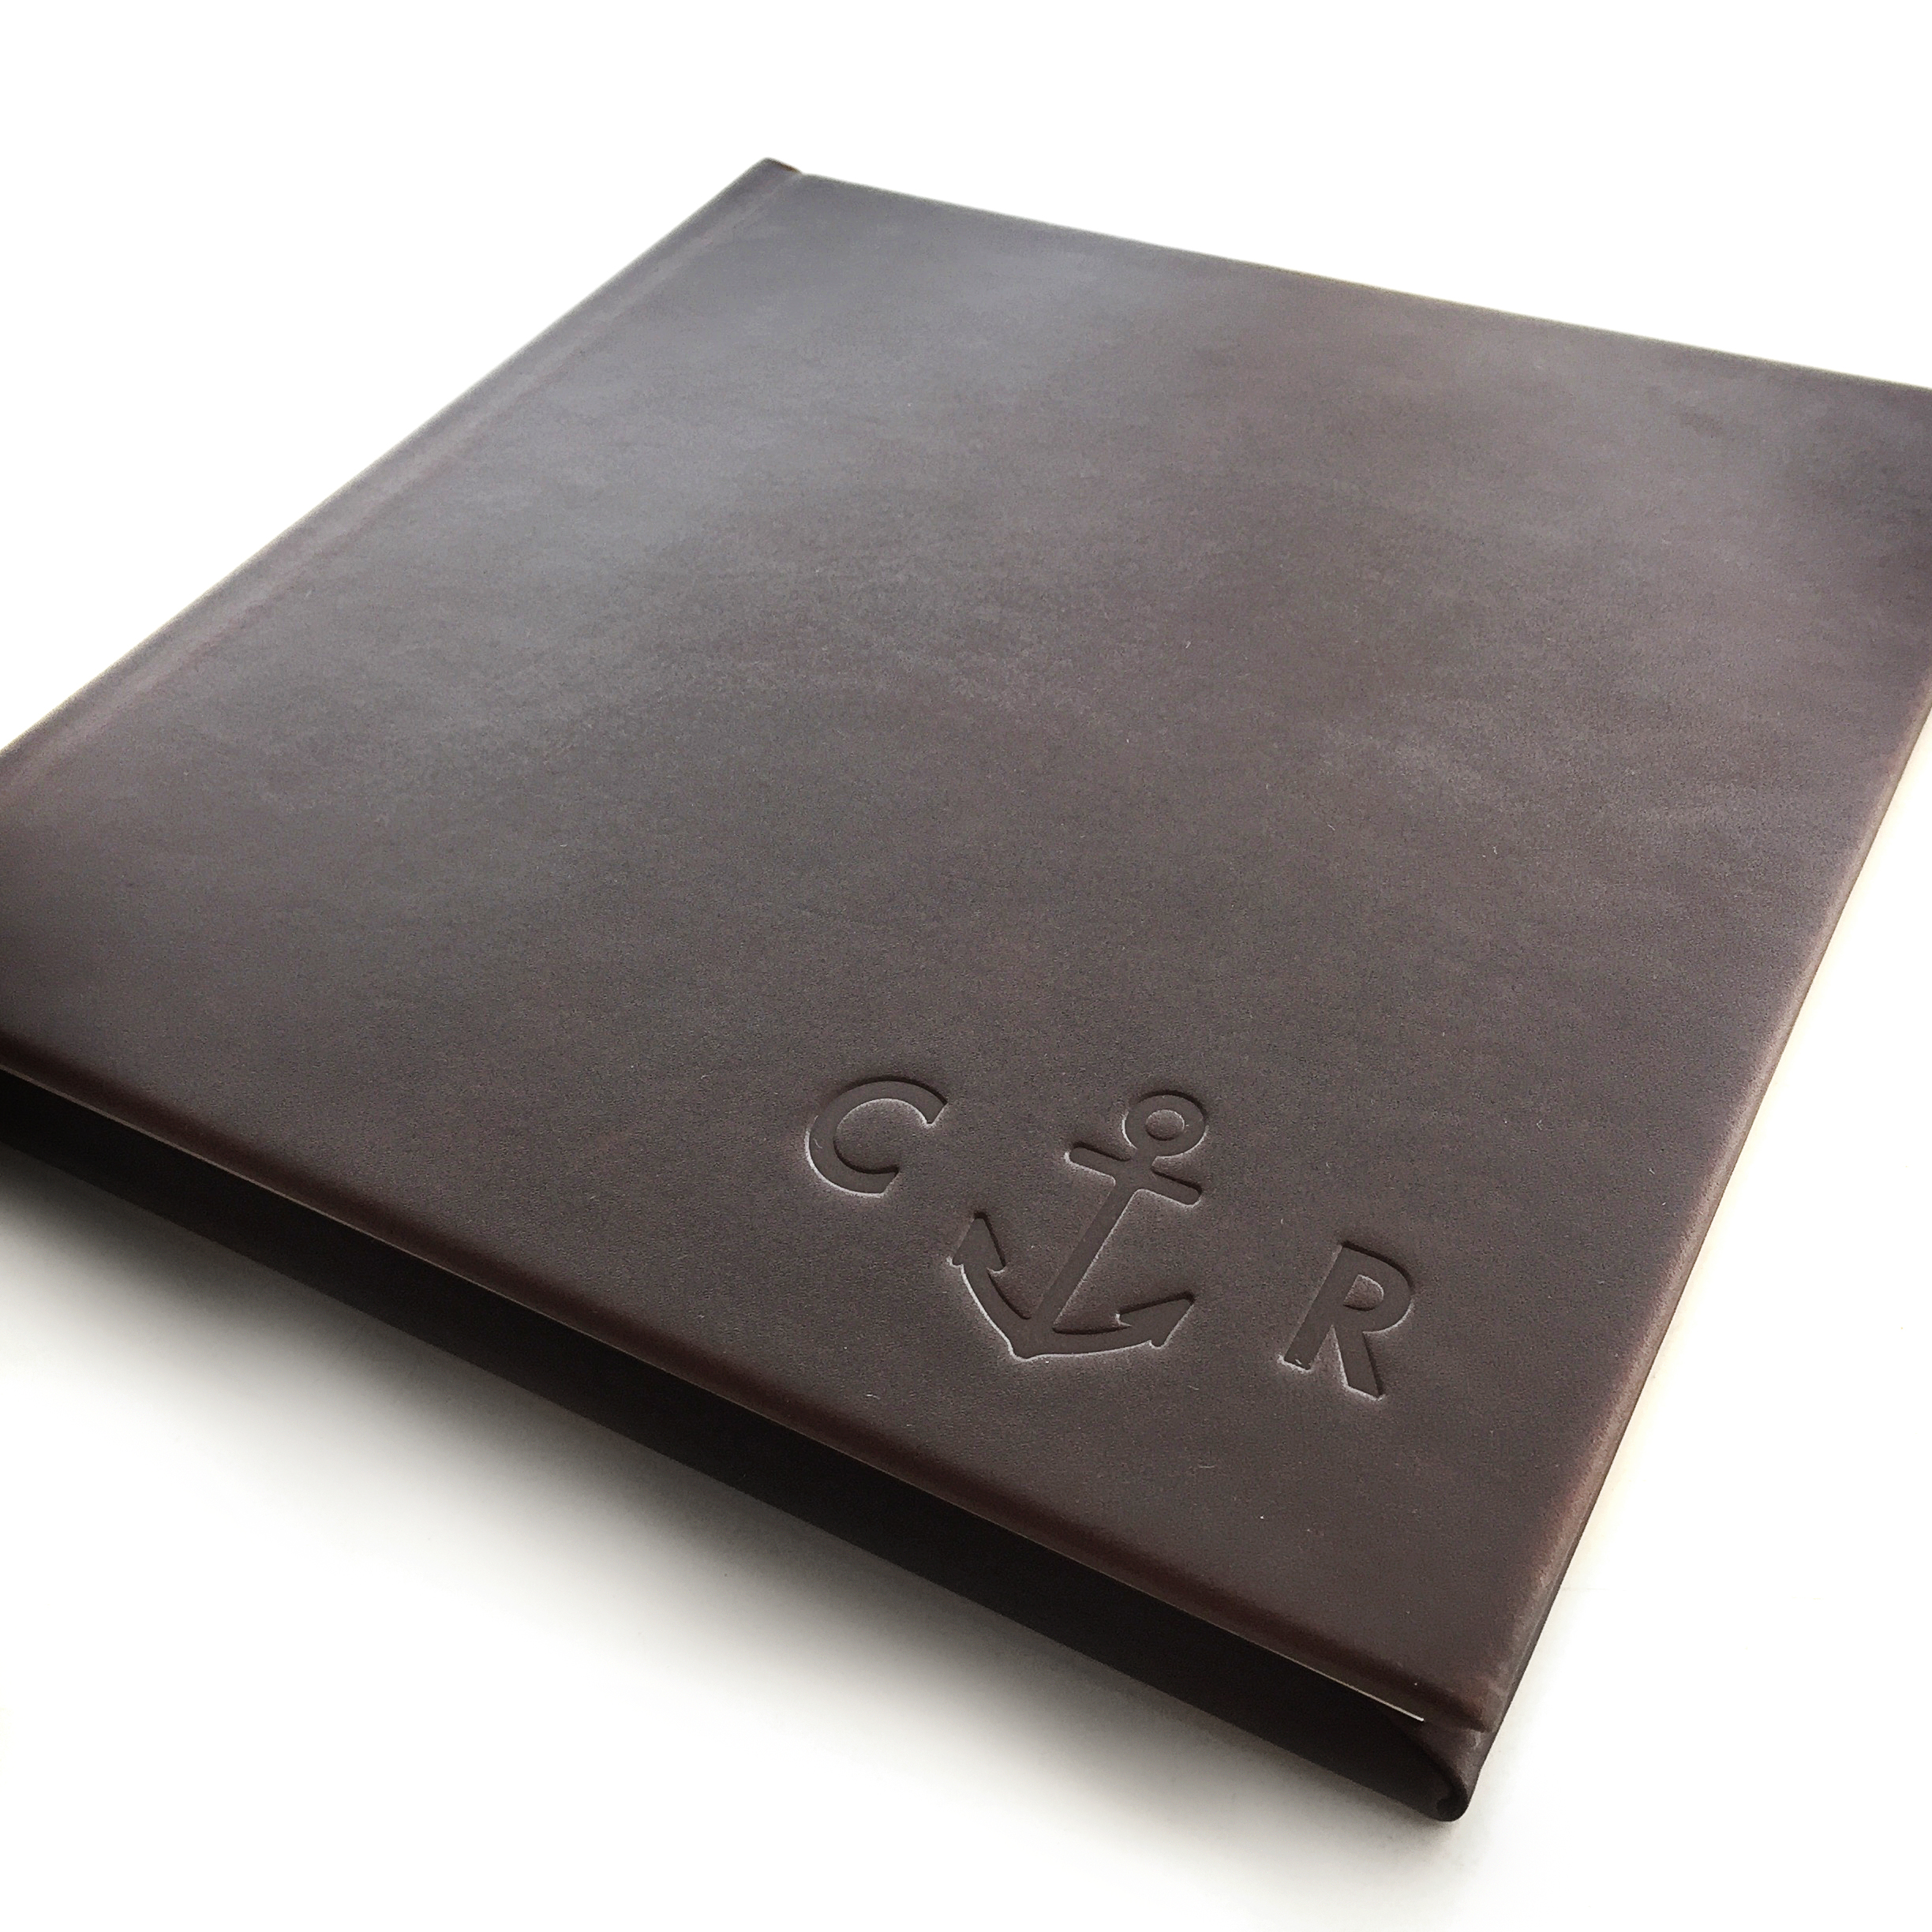 Vick Photography Signature Album Leather Embossing Cover.JPG